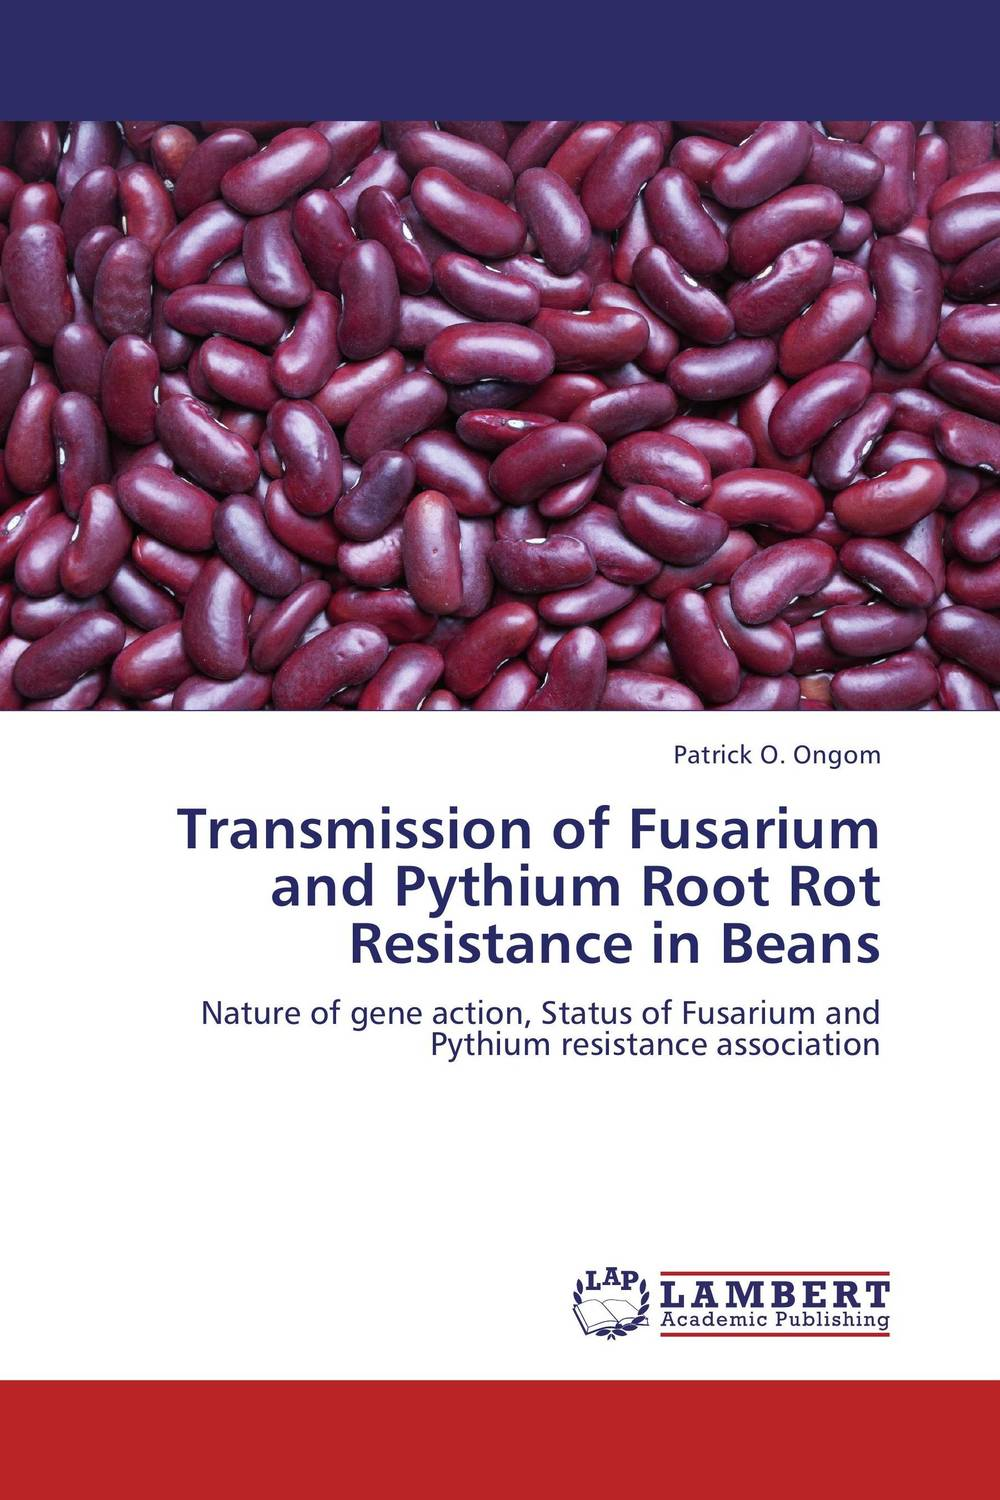 Transmission of Fusarium and Pythium Root Rot Resistance in Beans the teeth with root canal students to practice root canal preparation and filling actually